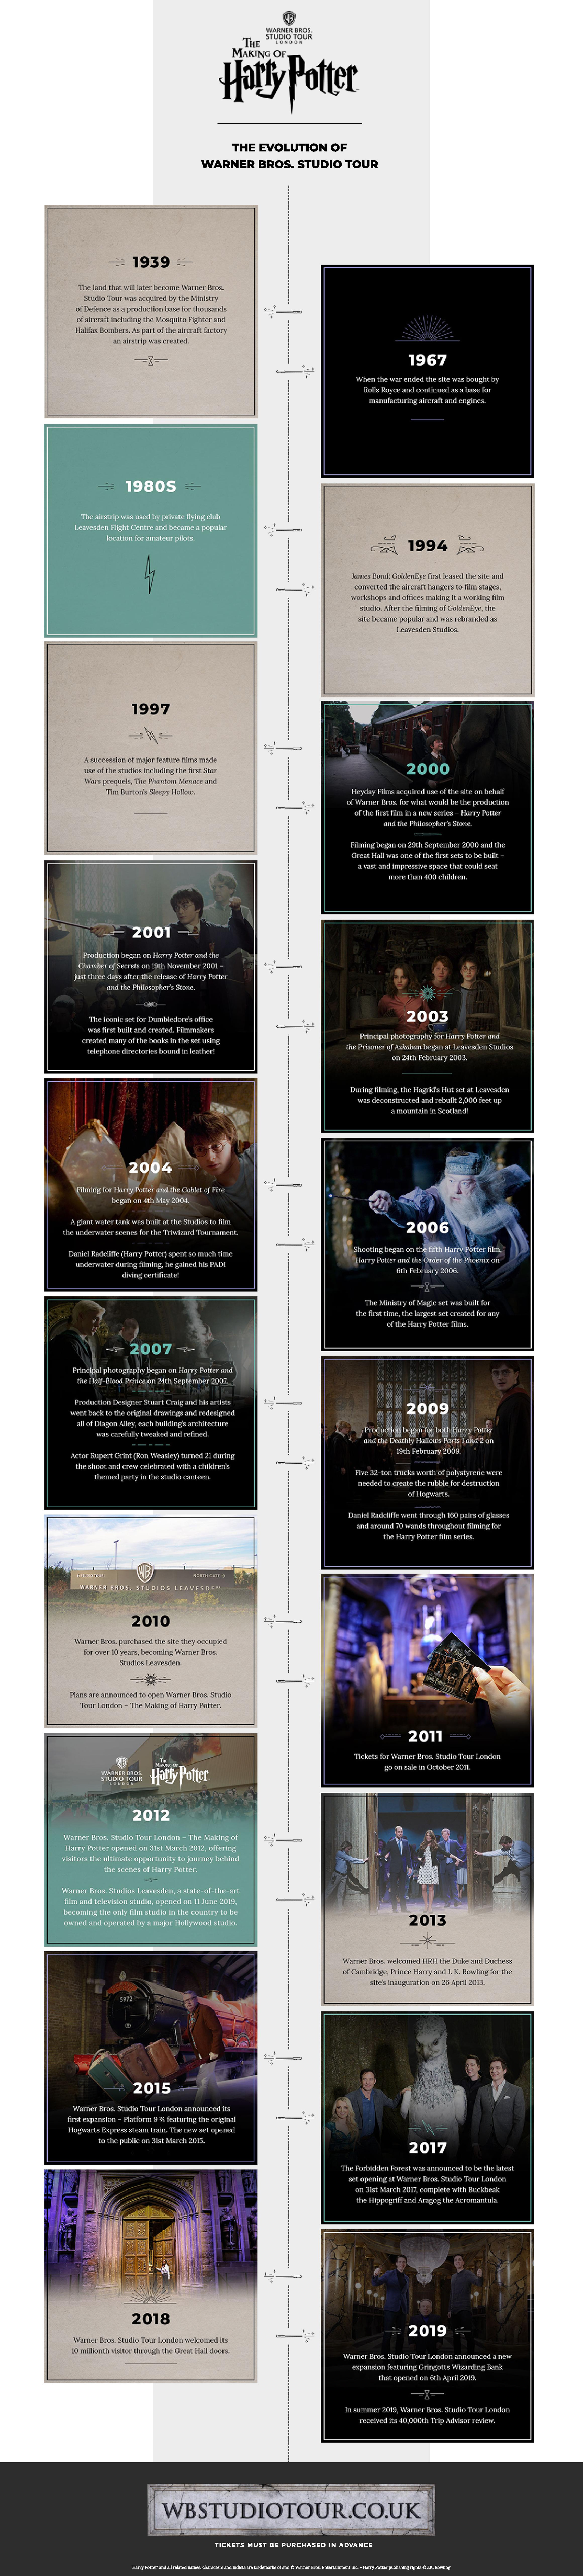 WBST_Timeline Infographic-page-001